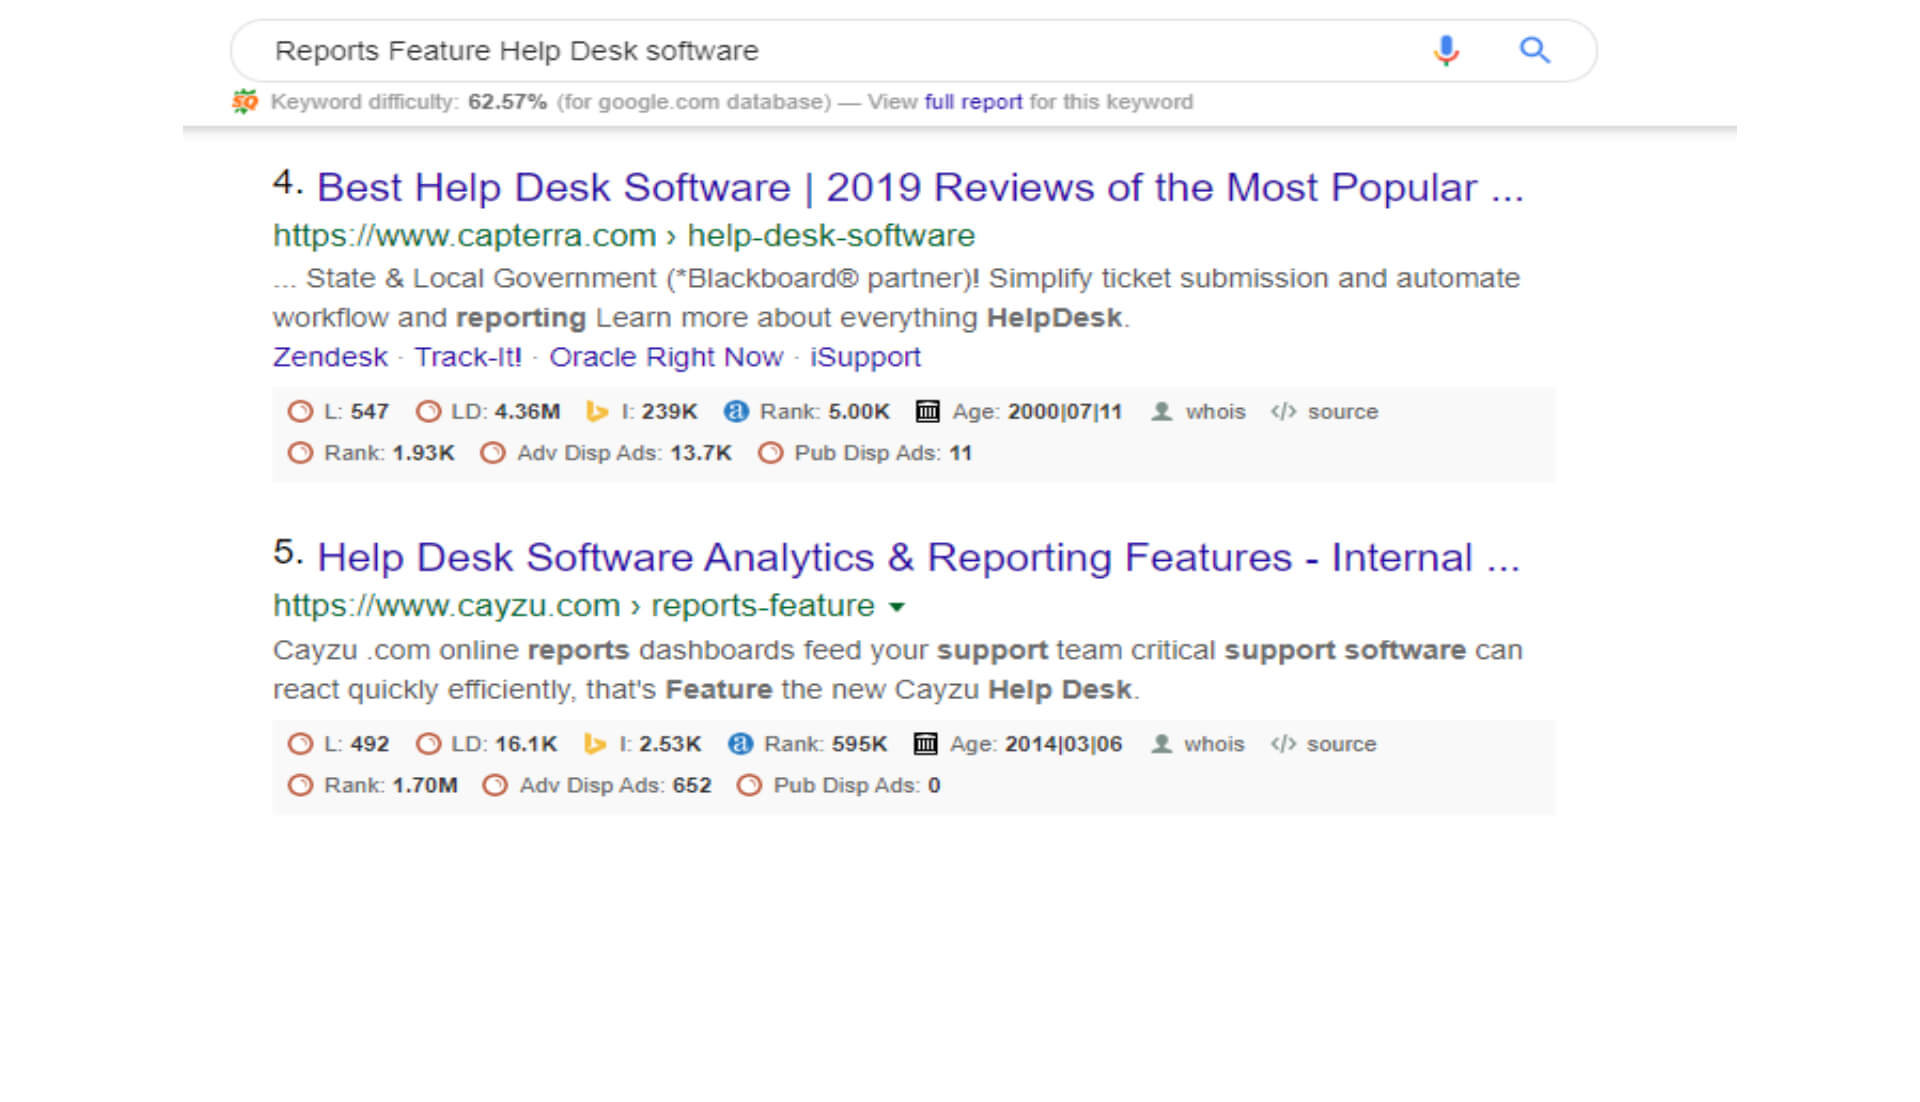 Reports Feature Help Desk software